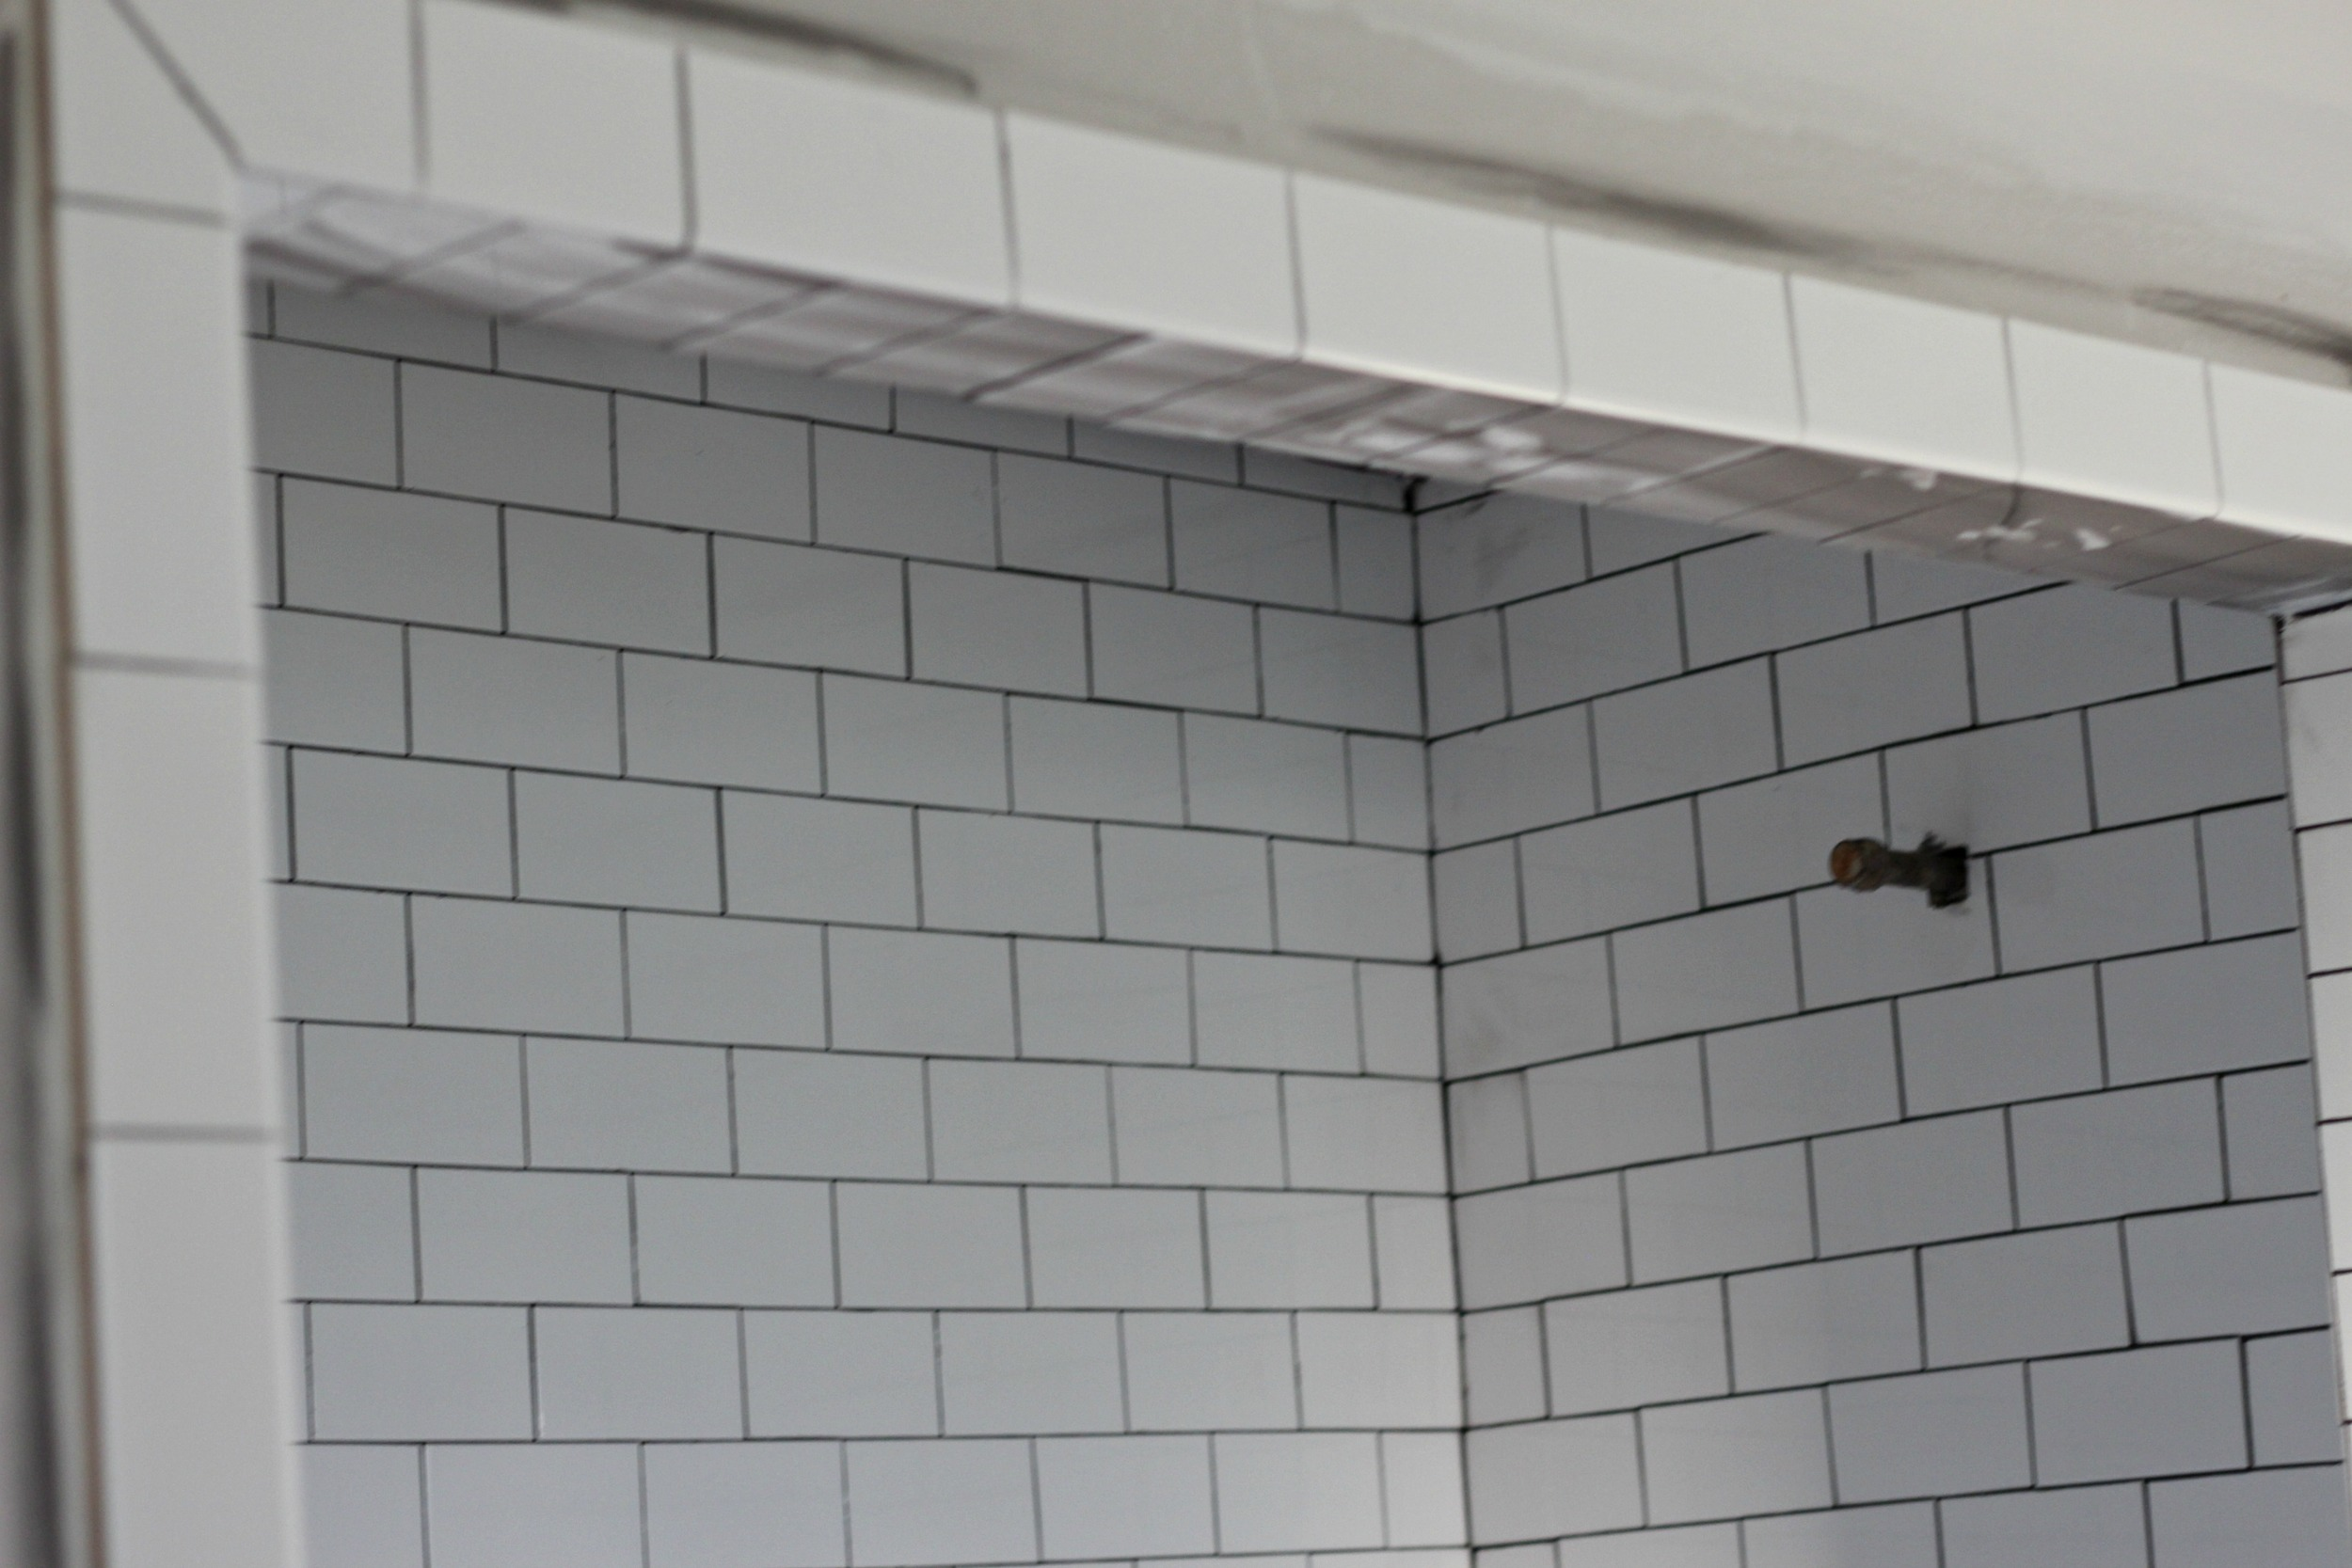 New subway tile in shower